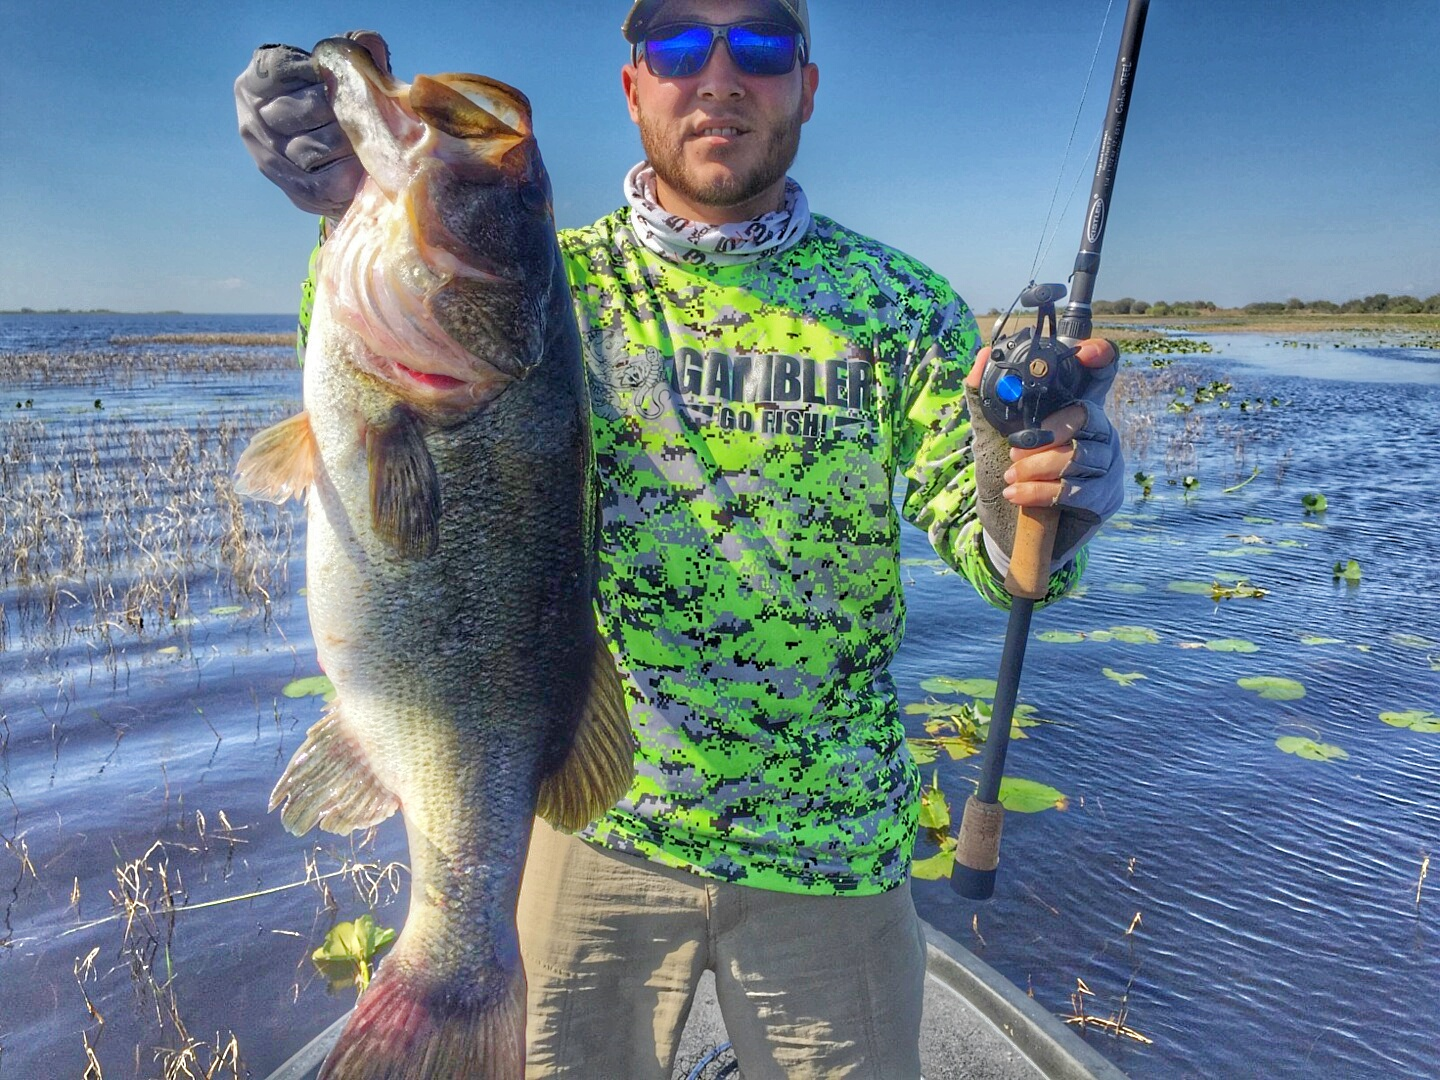 Weekly okeechobee fishing report march 18 20 coastal for Lake kissimmee fishing report